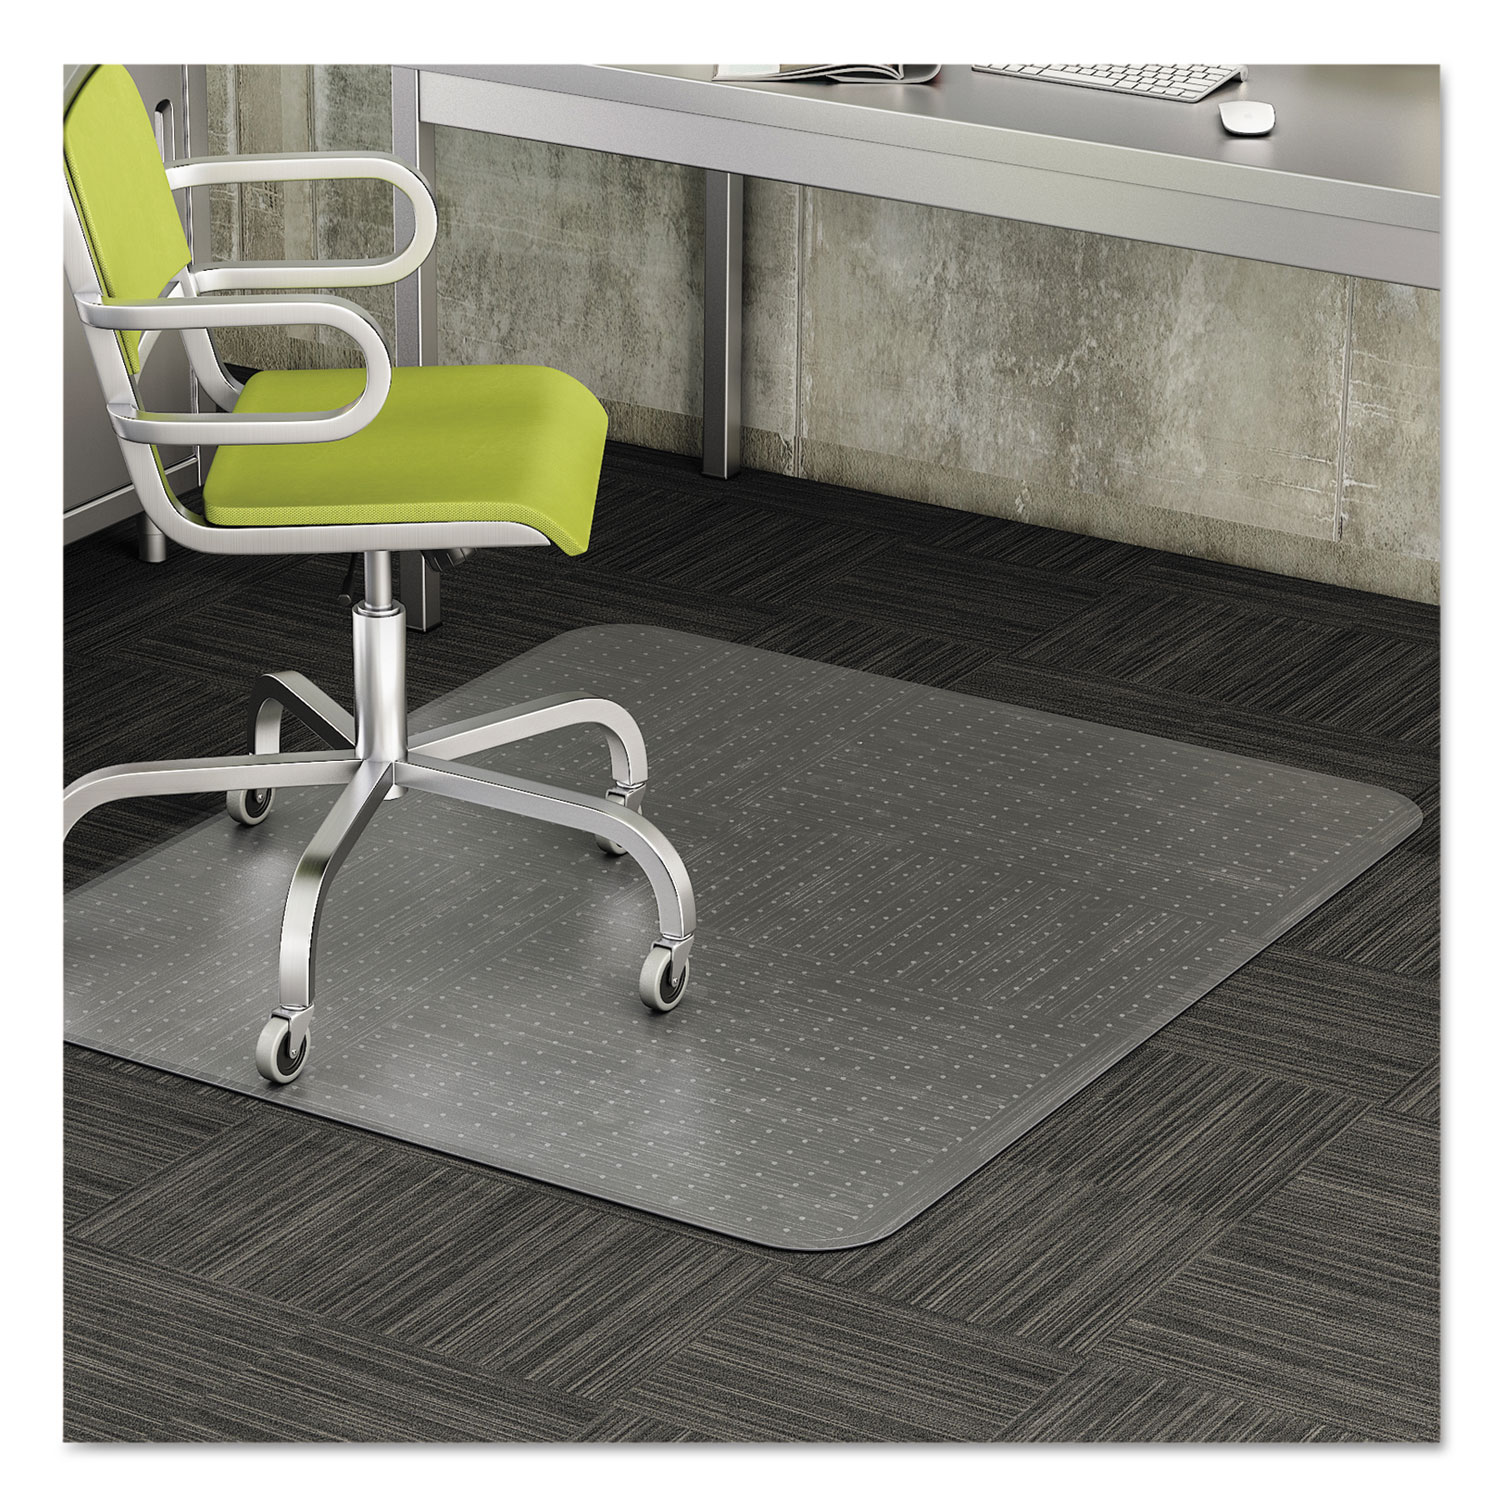 Discover Duramat Moderate Use Chair Mat For Low Pile